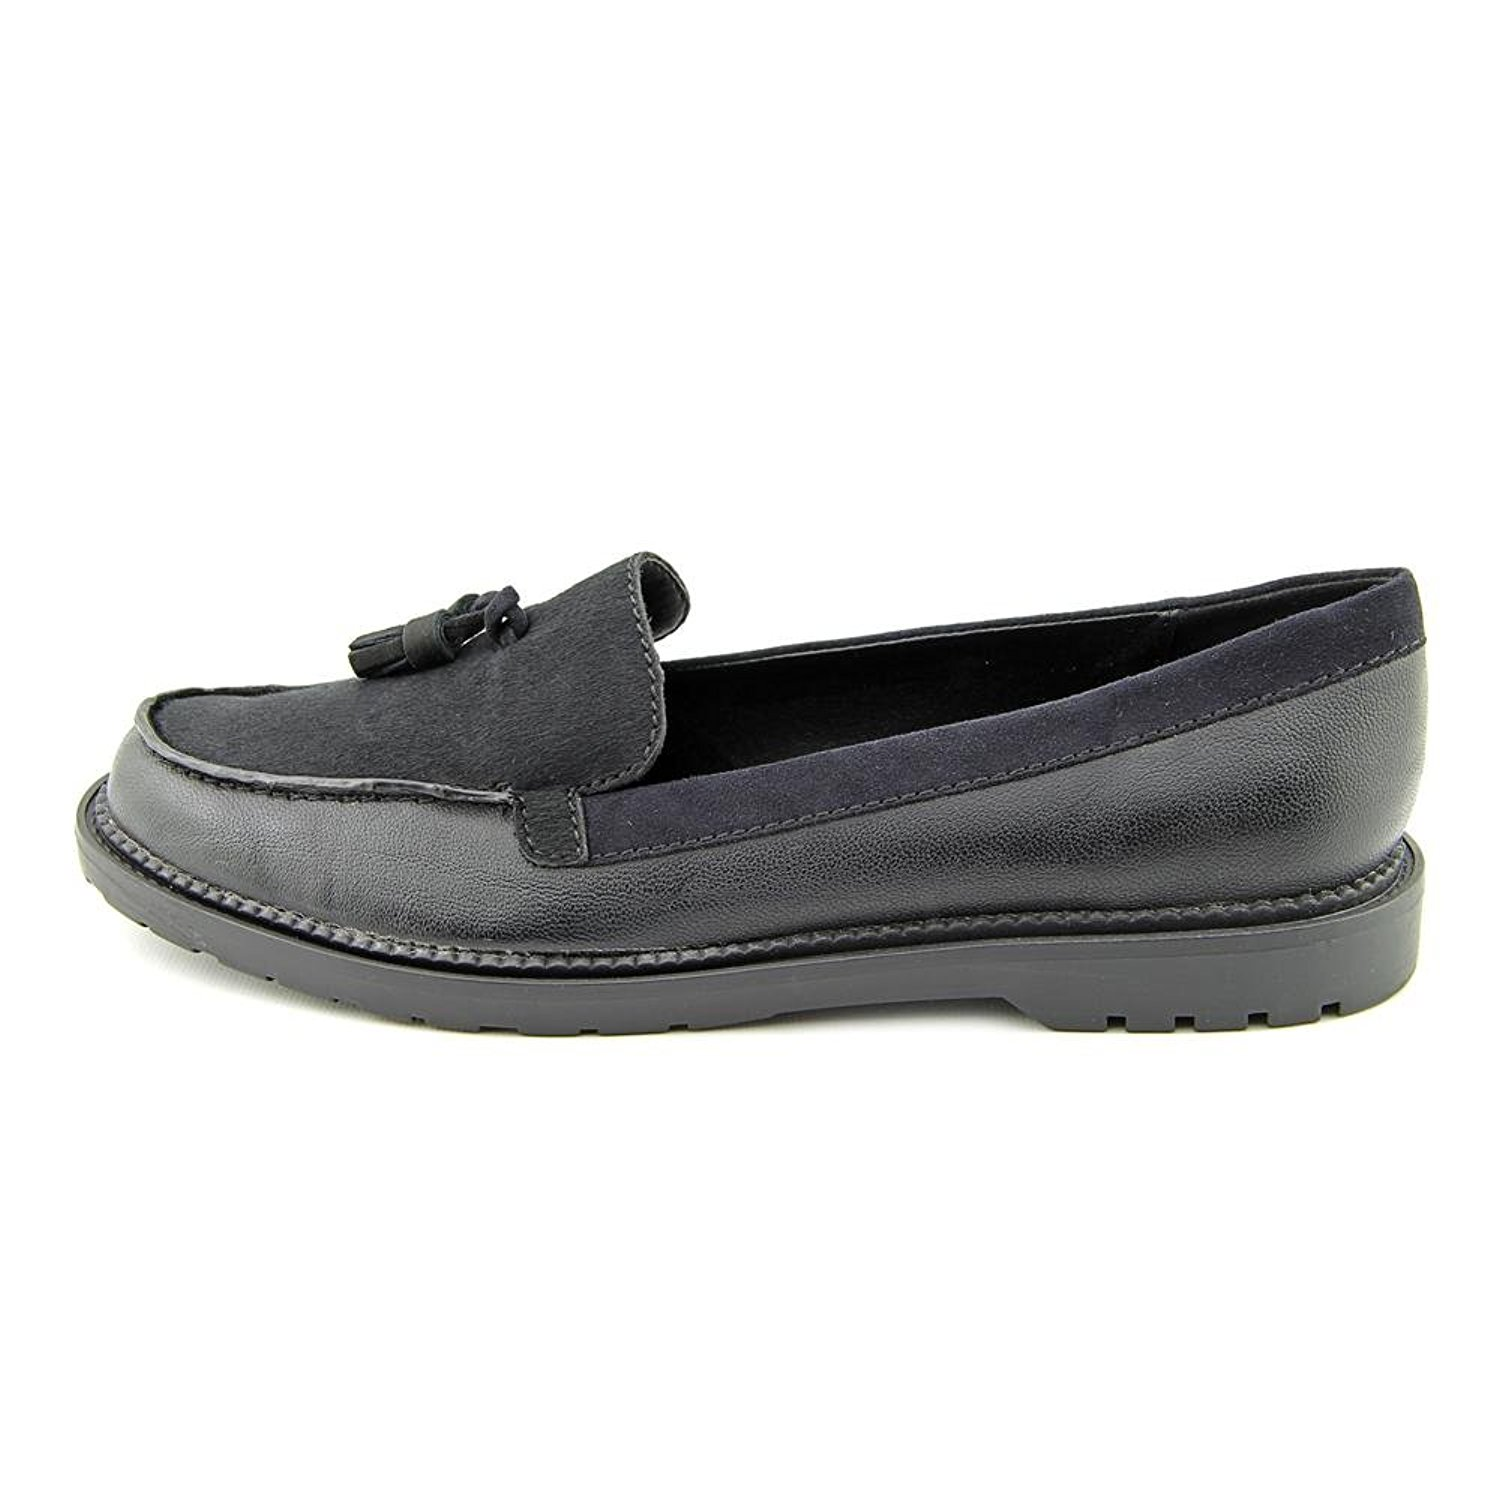 Femmes Kenneth Cole Reaction Chaussures Loafer - image 1 de 2